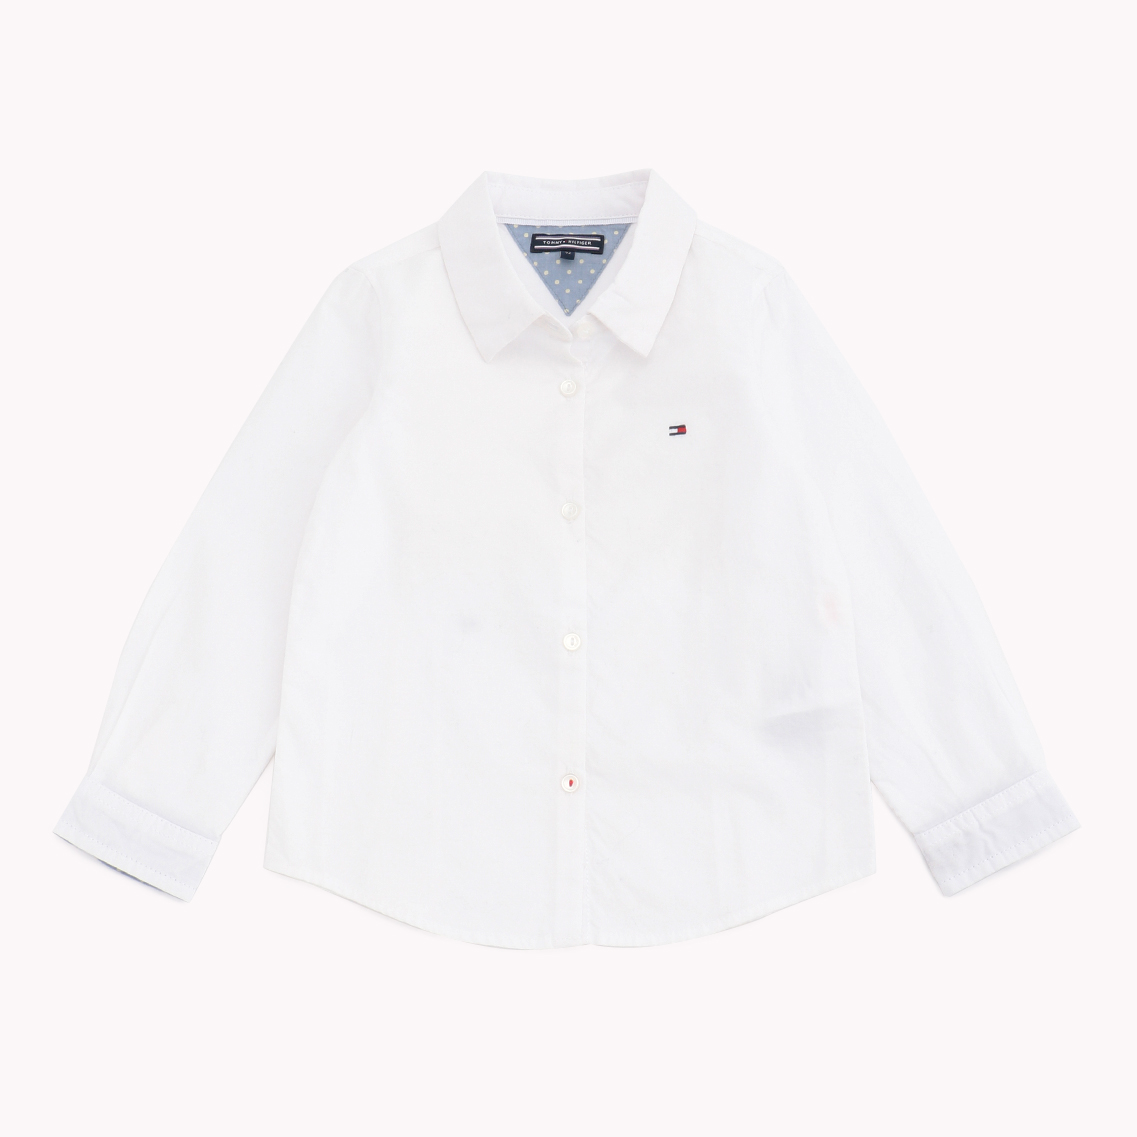 NEW GIRLS OXFORD MINI SHIRT L/